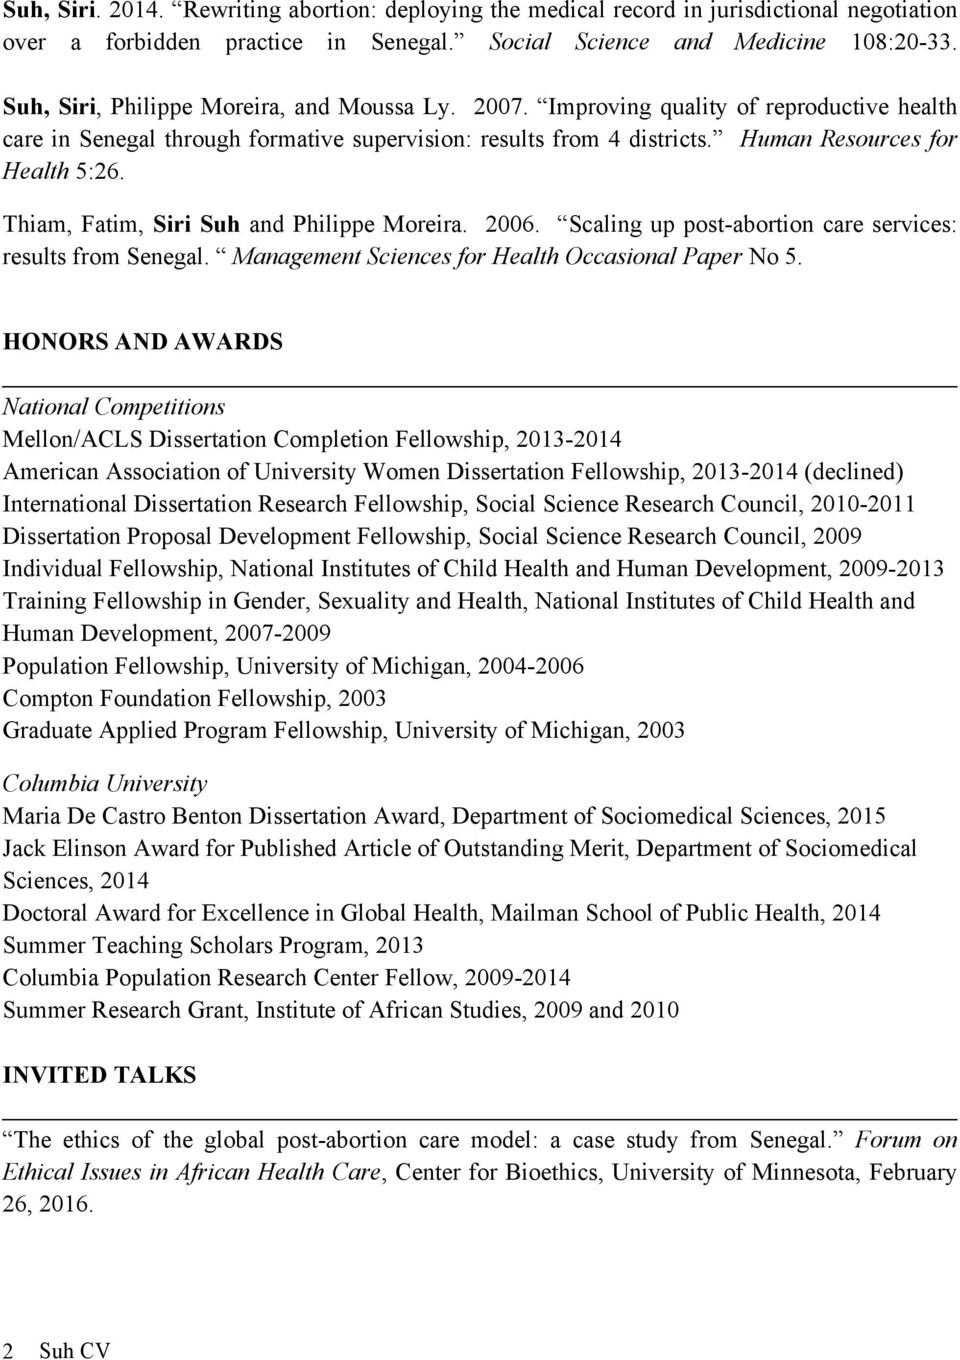 Thiam, Fatim, Siri Suh and Philippe Moreira. 2006. Scaling up post-abortion care services: results from Senegal. Management Sciences for Health Occasional Paper No 5.